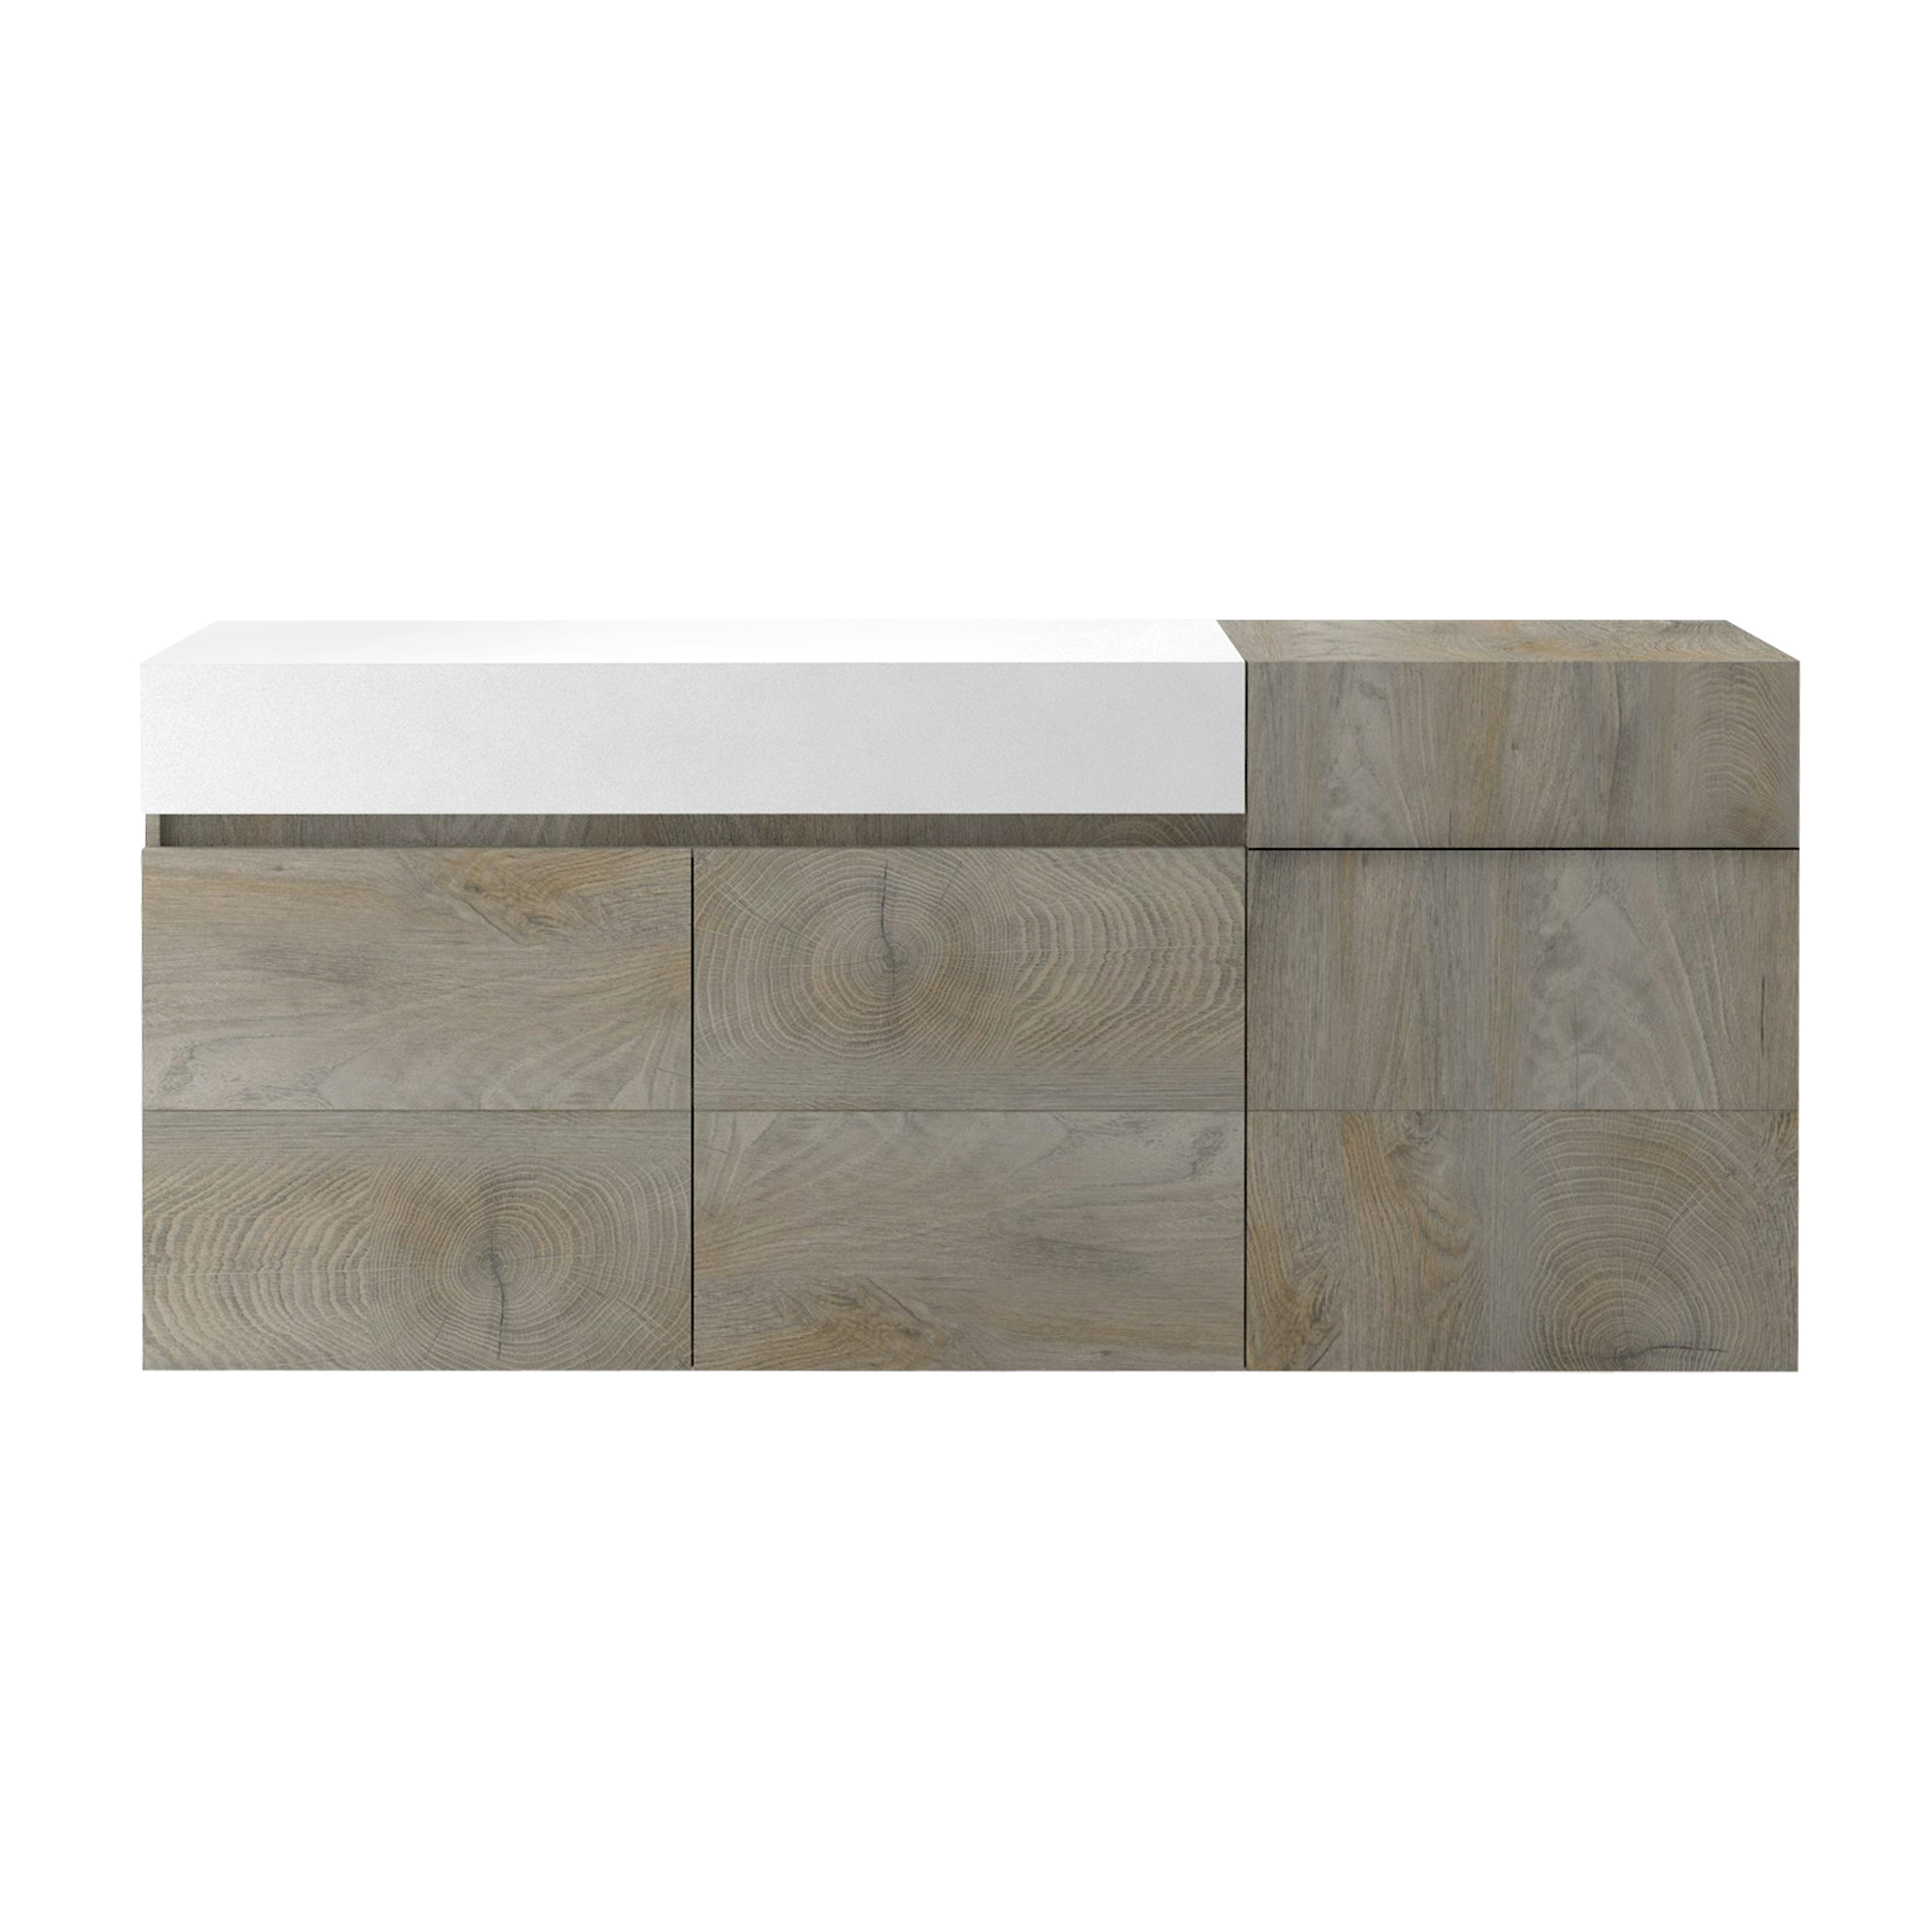 Muller Small Sideboard In Distressed Effect And White With LED_3